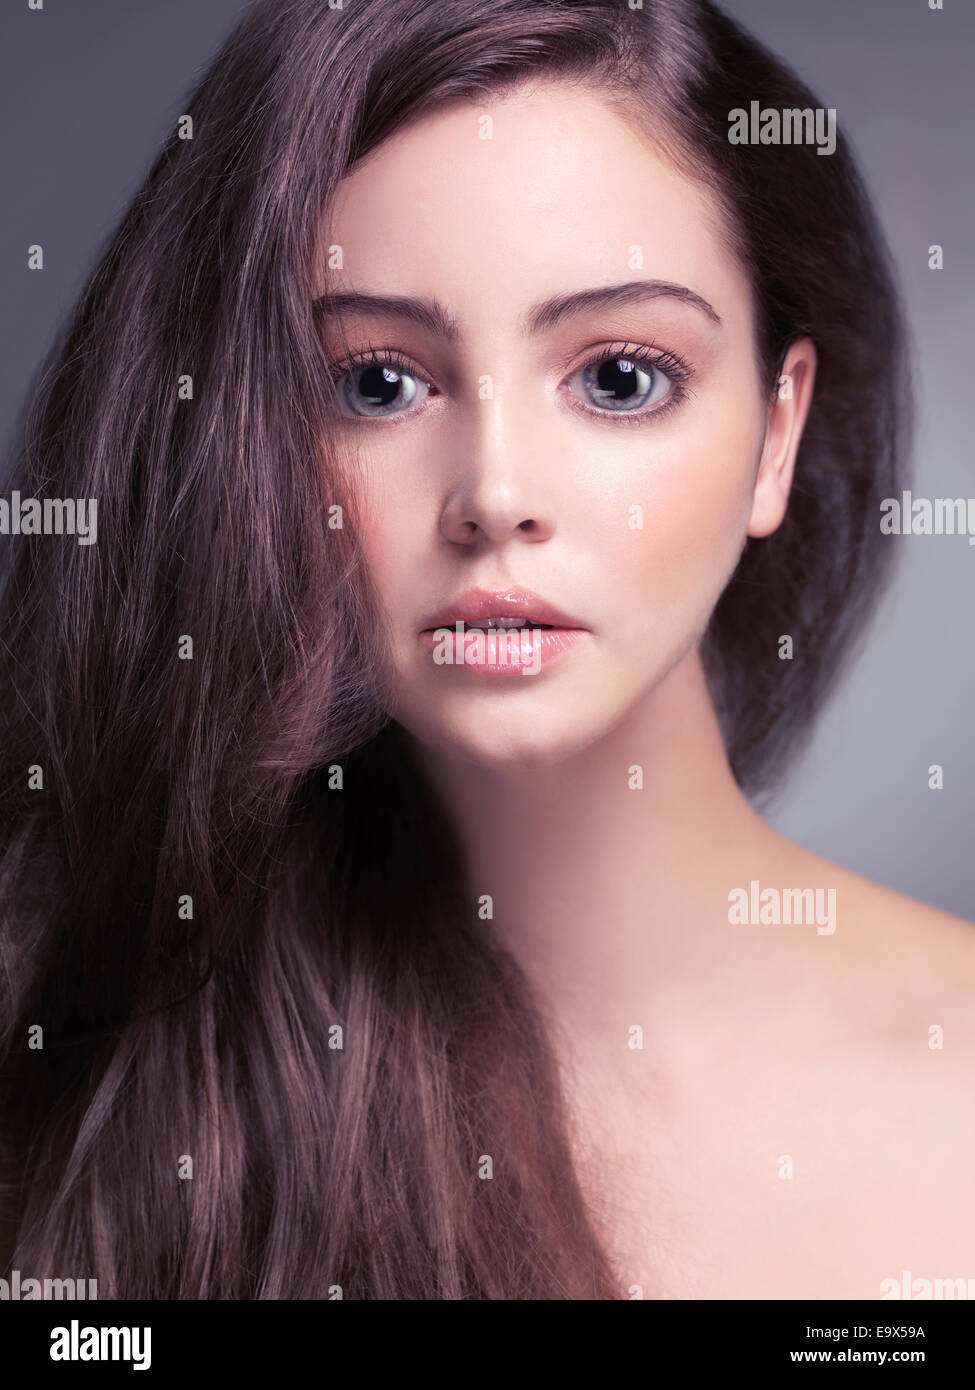 Cute Young Woman Face With Big Gray Eyes And Long Brown